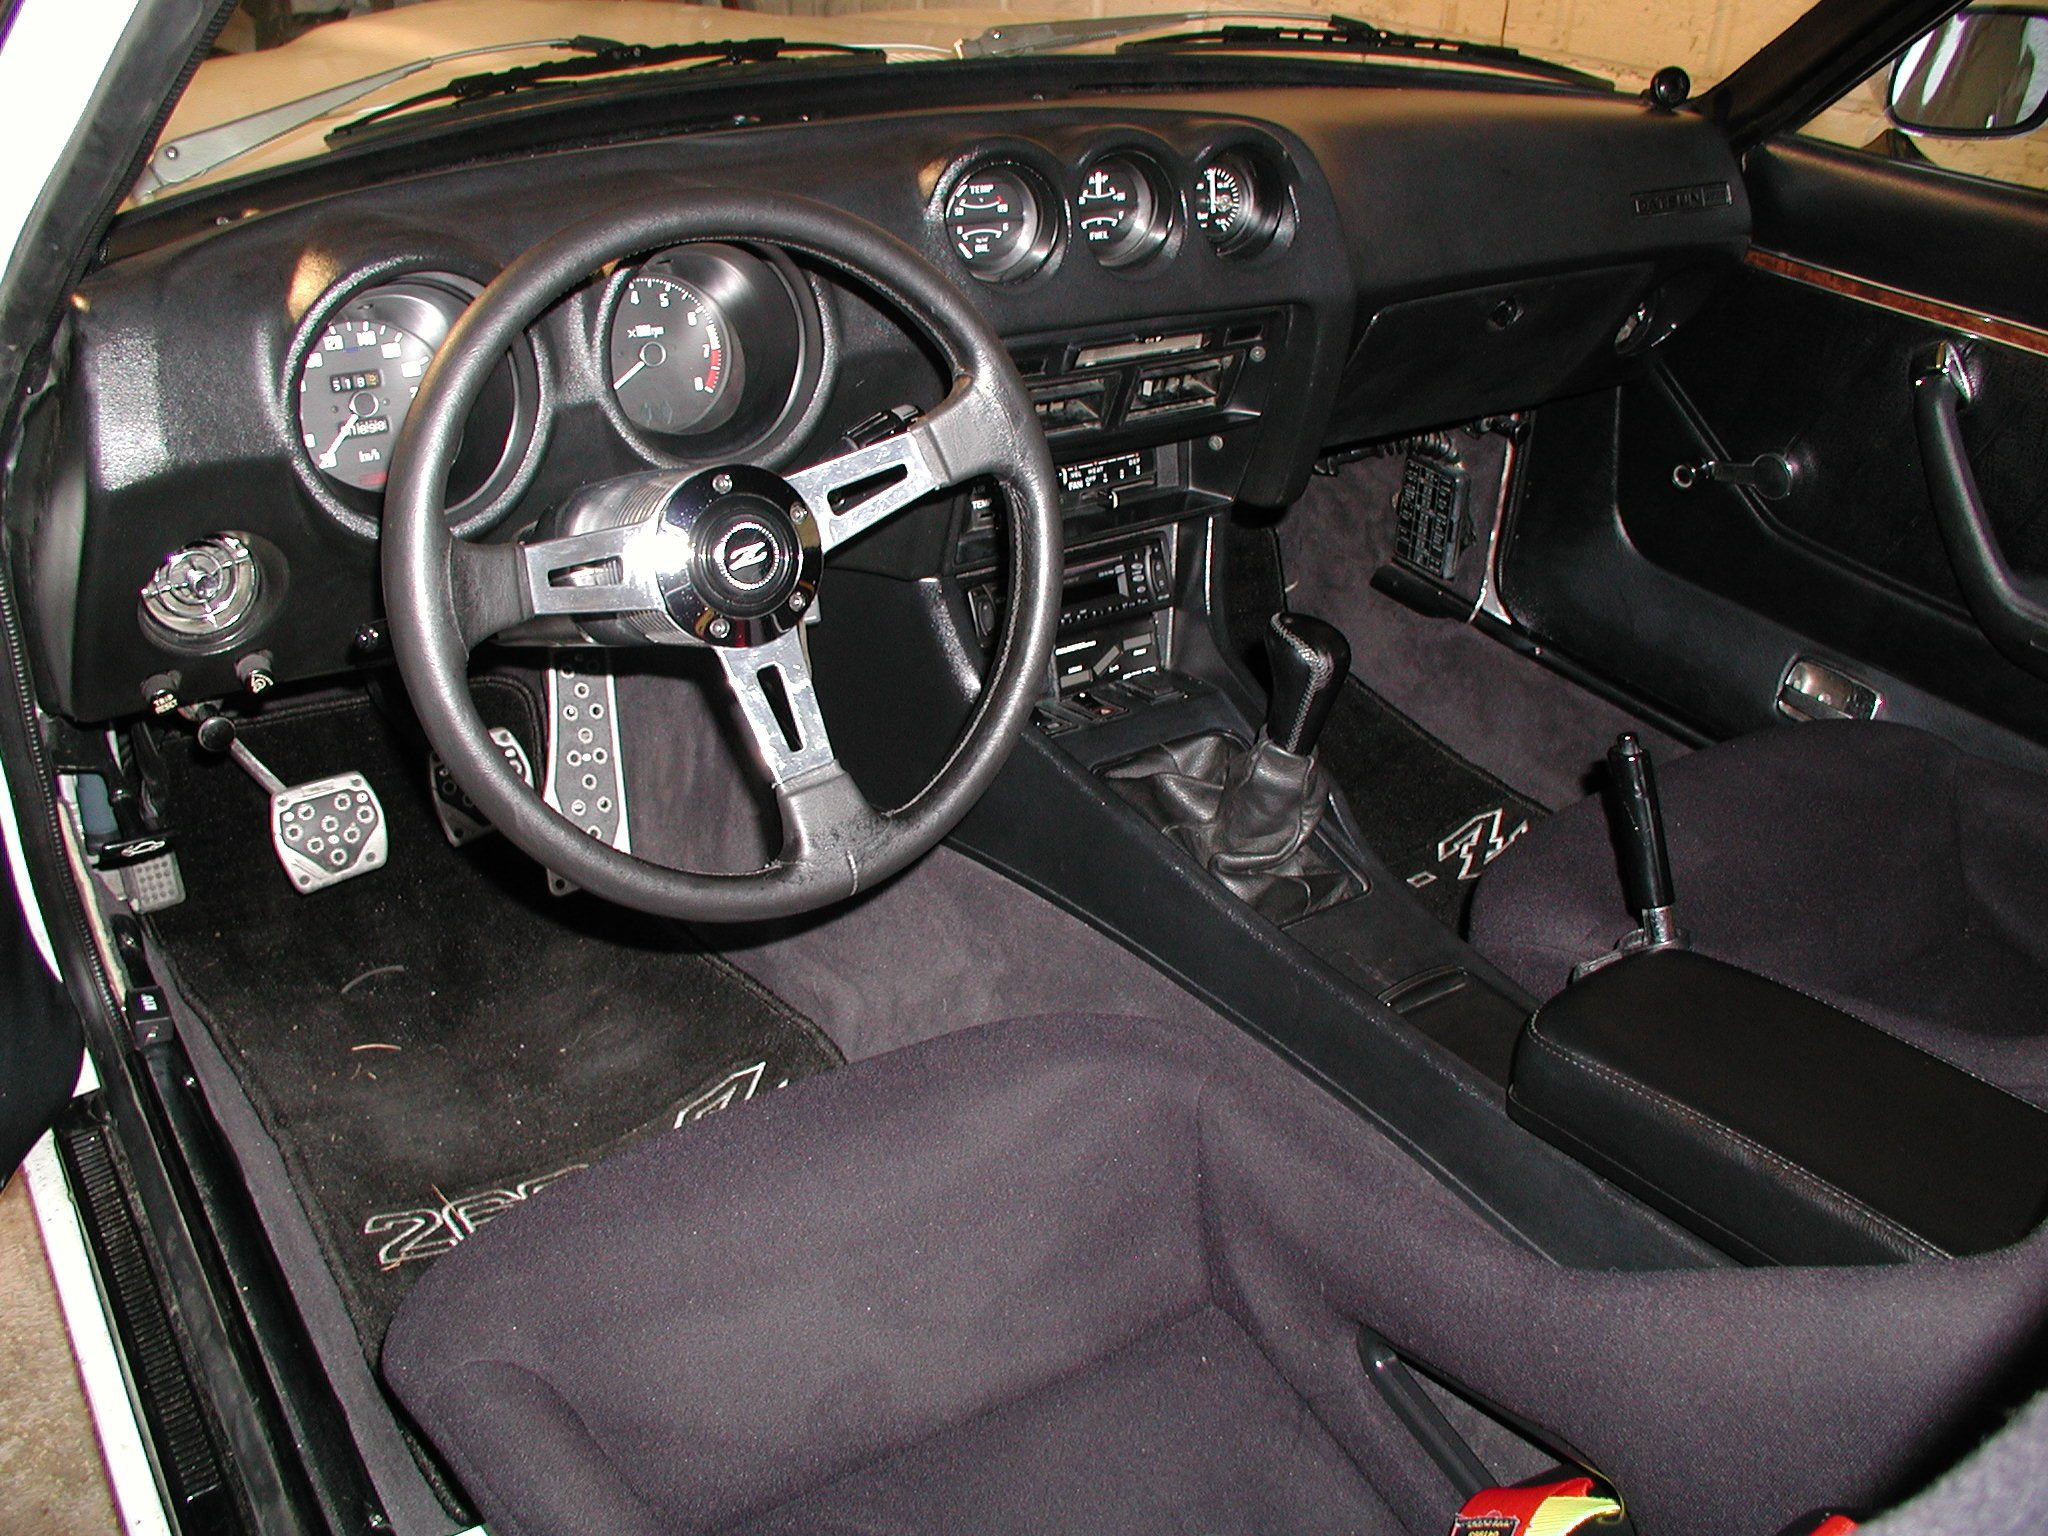 1970 1978 Nissan Z Car 240z 260z And 280z Top Speed Forum O View Topic Mini Max Wiring With Steering Wheel Push Button